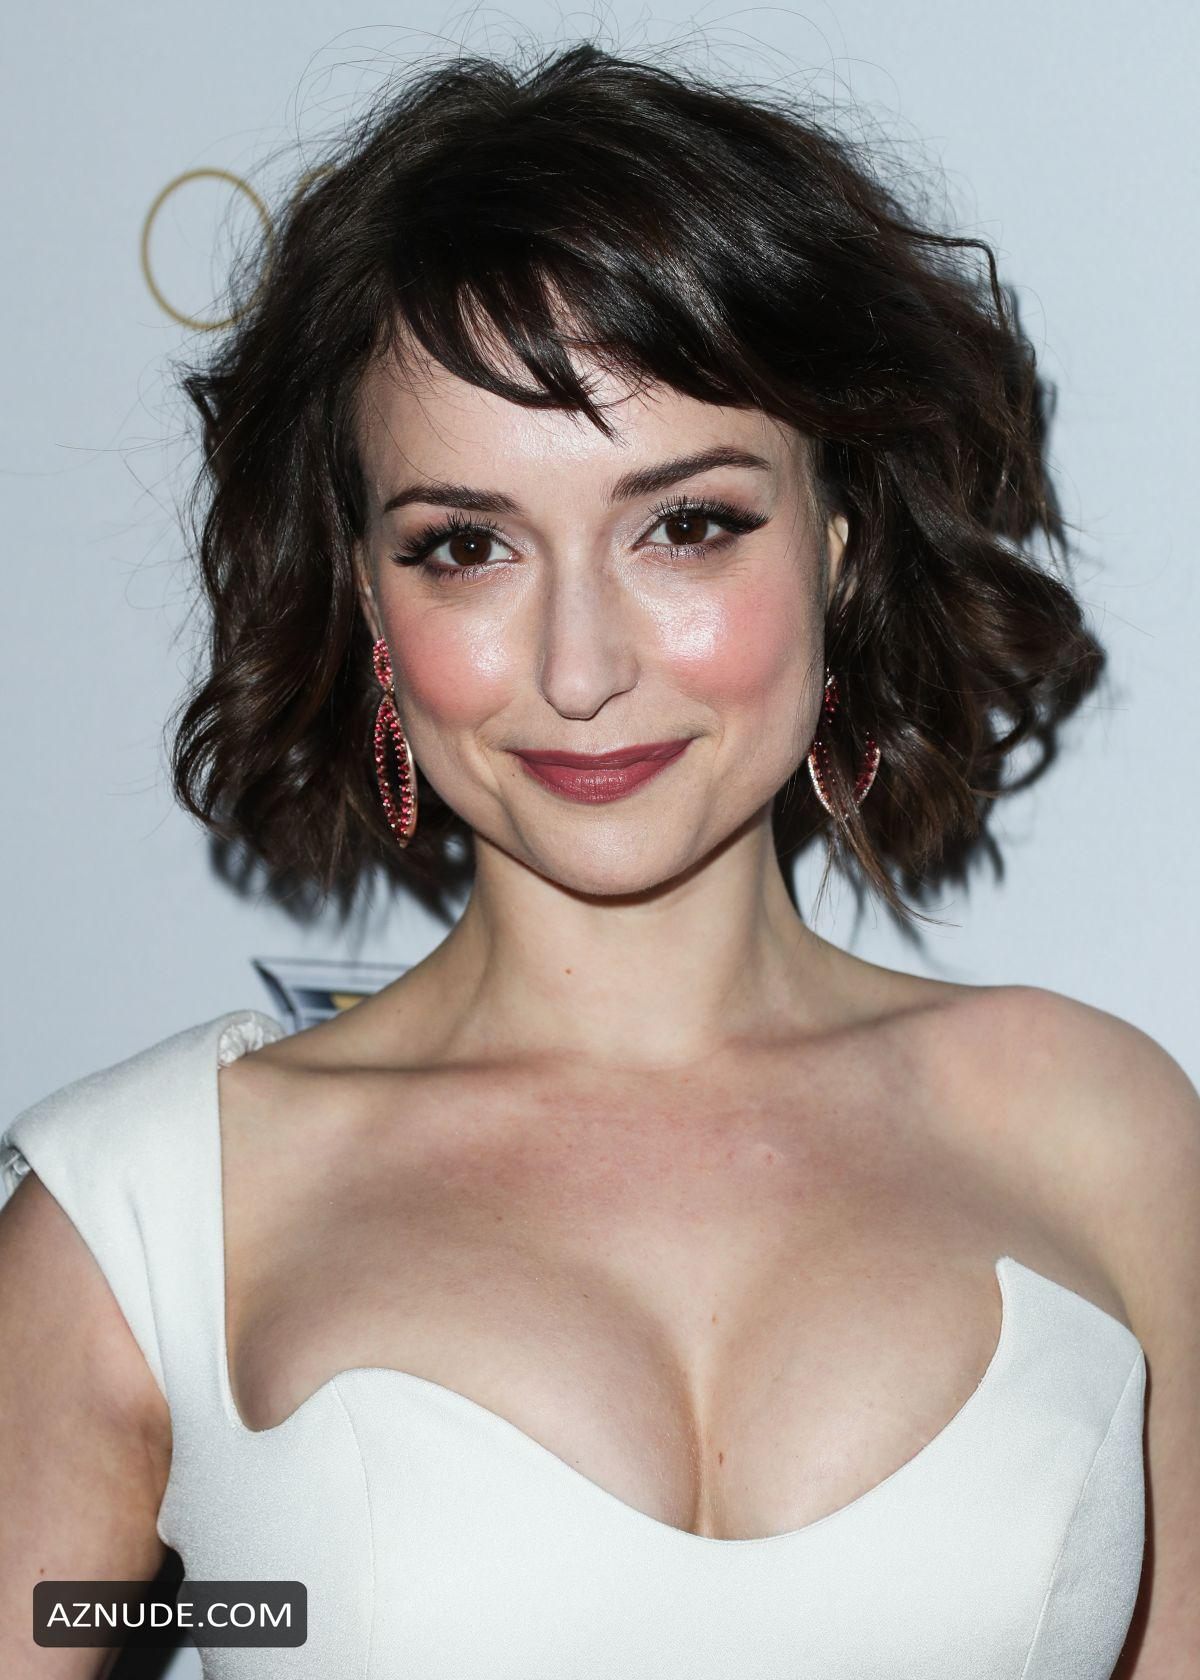 Nude Milana Vayntrub nudes (37 foto and video), Pussy, Leaked, Twitter, cameltoe 2020